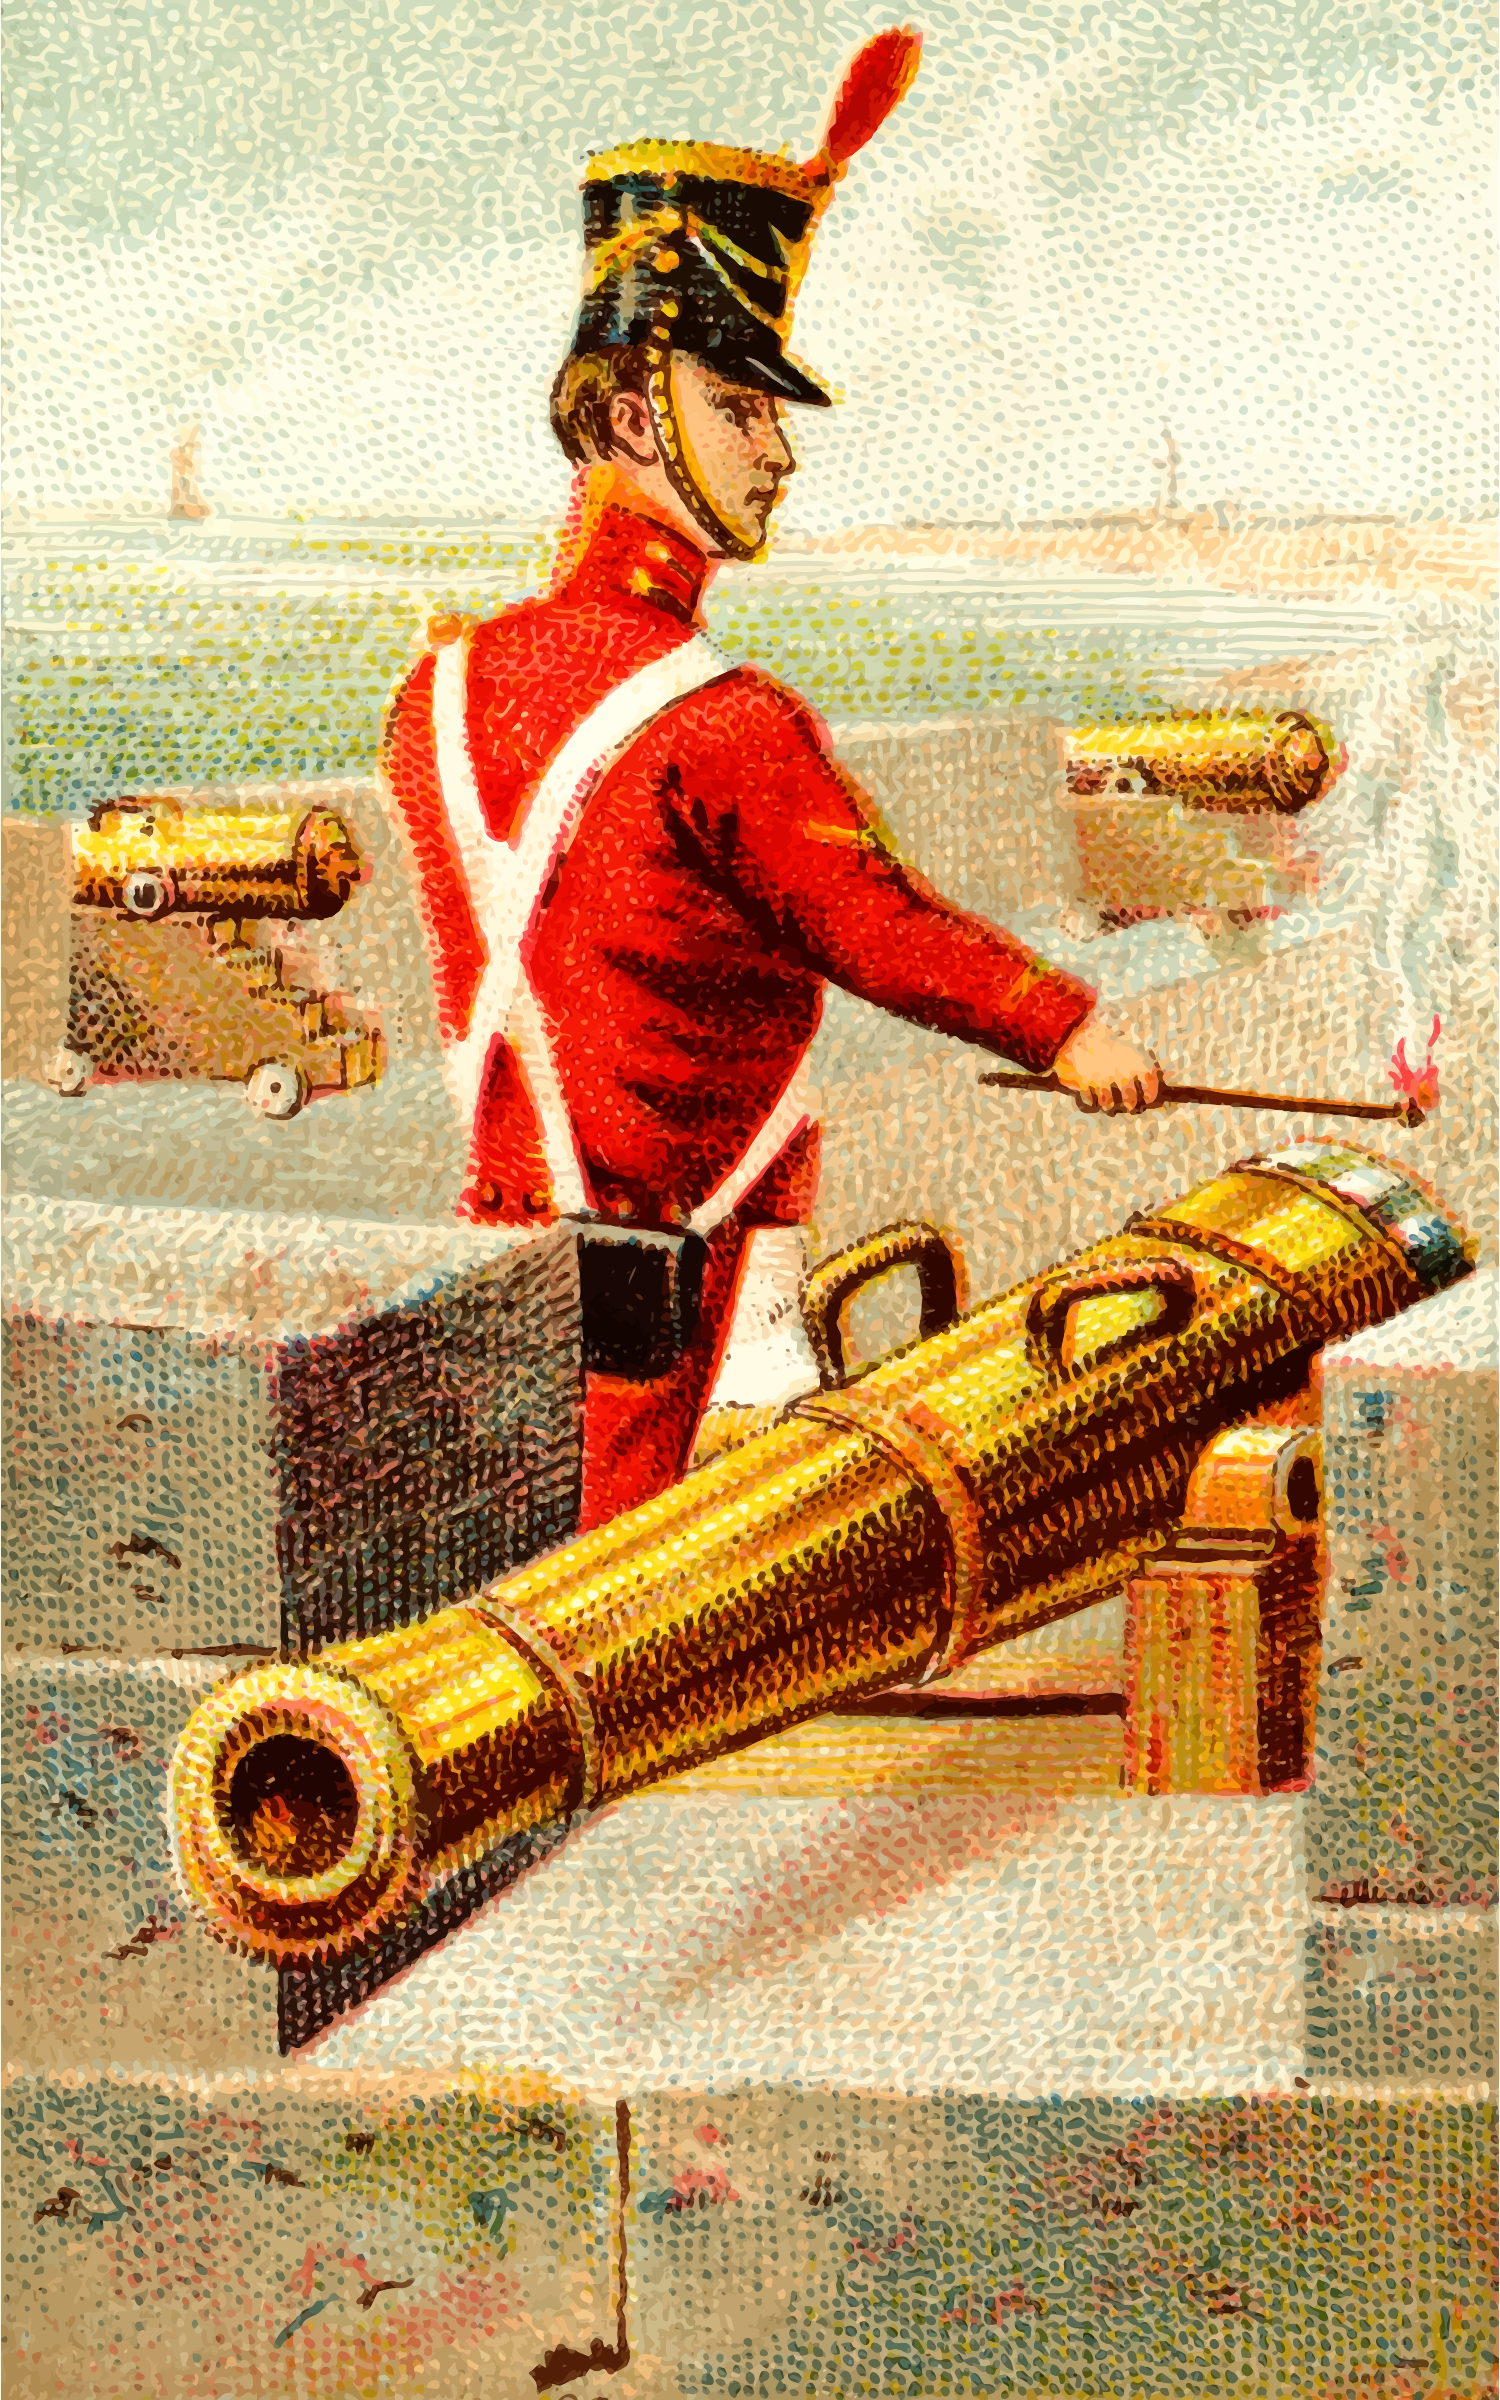 Cigarette card - Cannon by Firkin